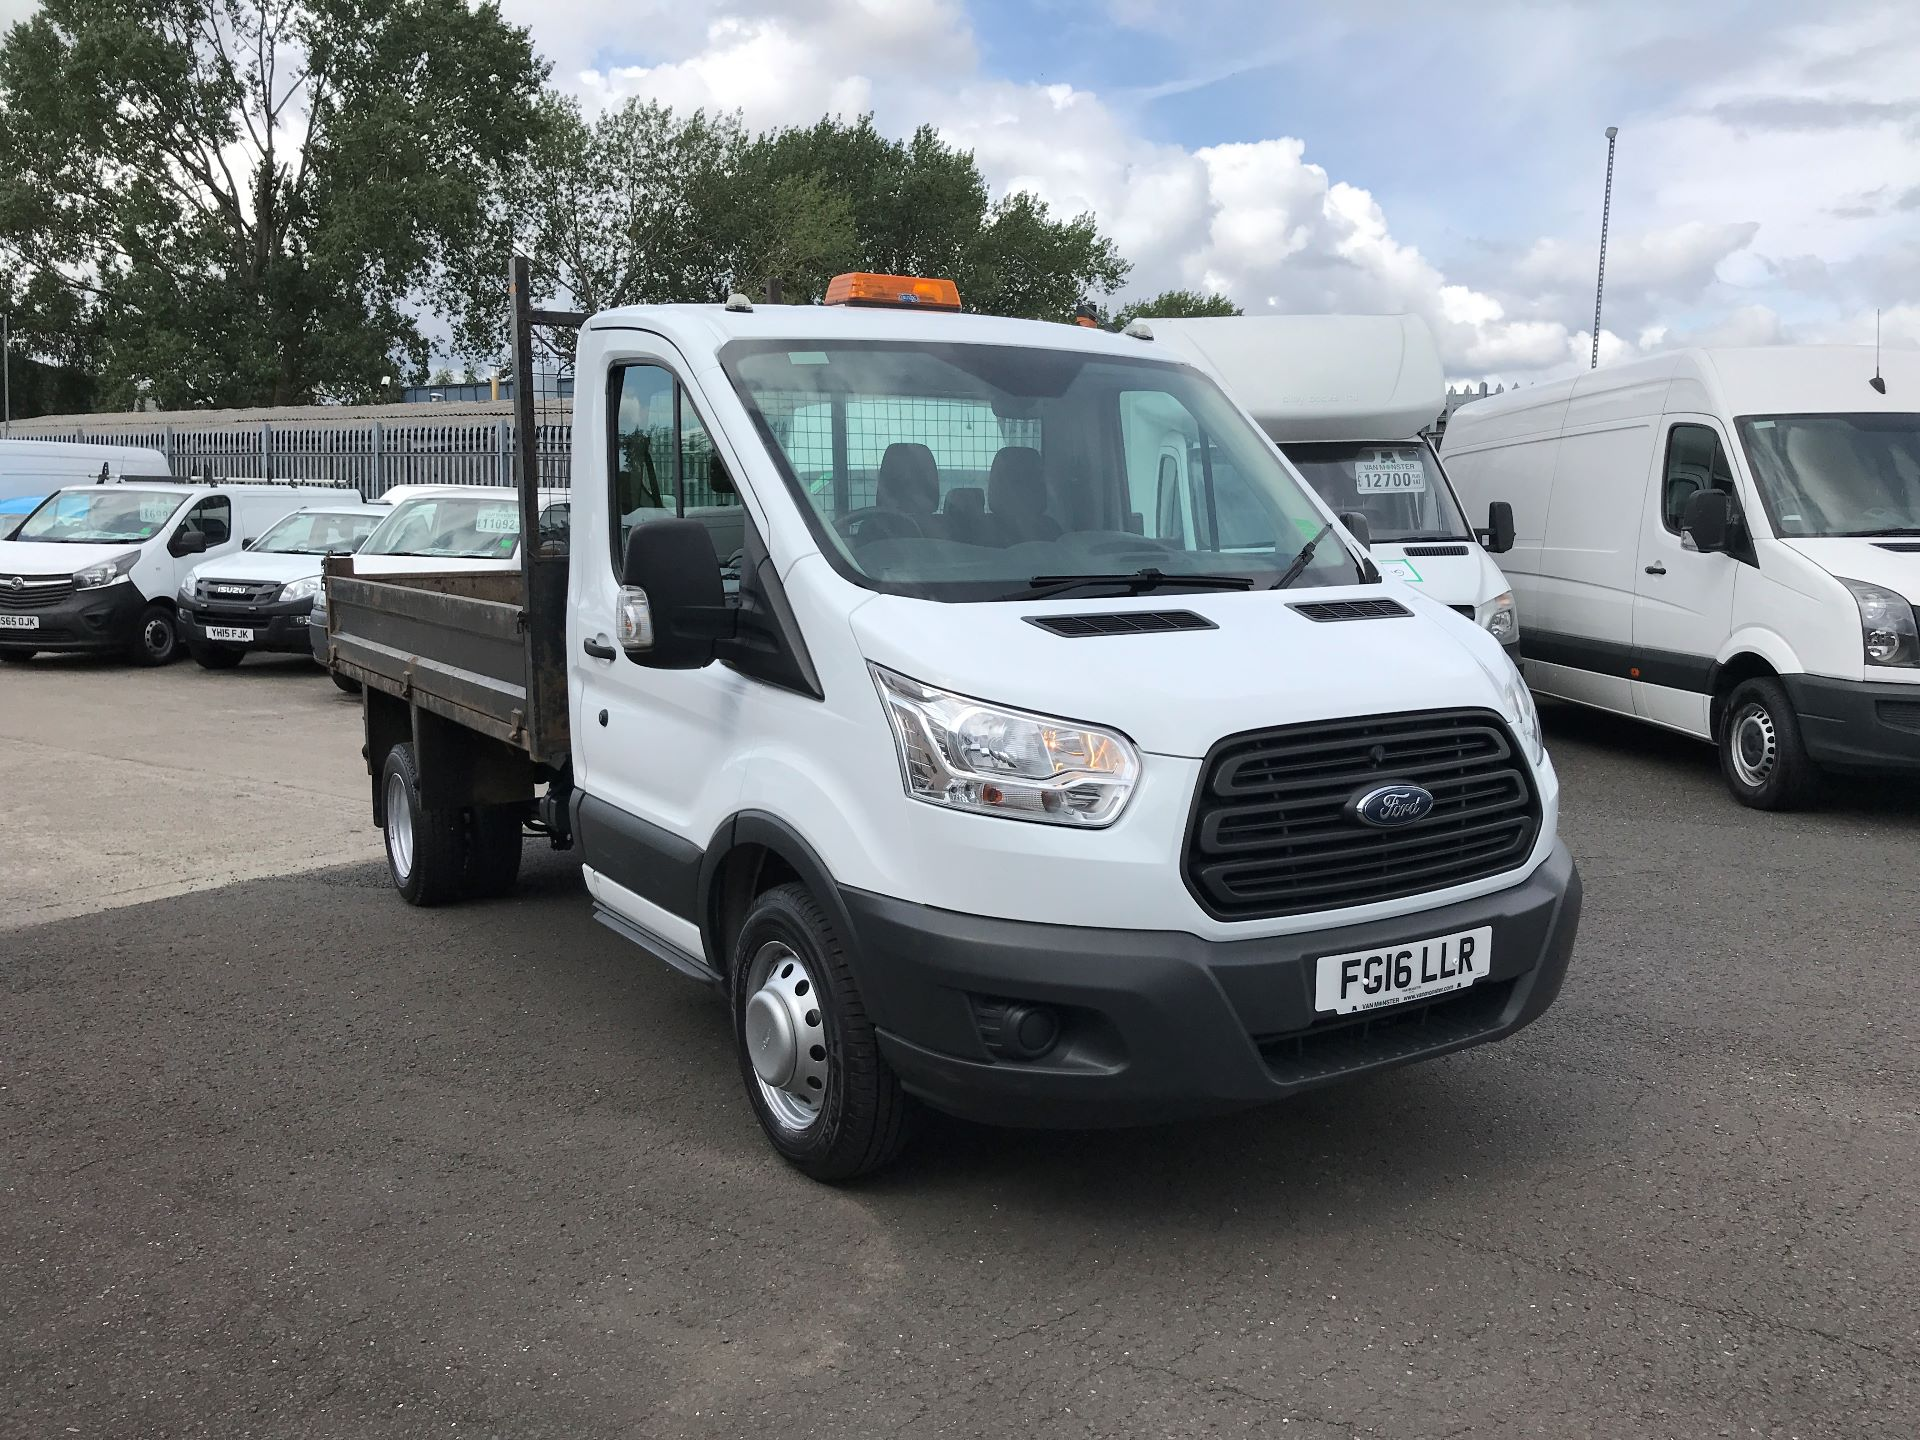 2016 Ford Transit  350 L2 SINGLE CAB TIPPER 125PS EURO 5 (FG16LLR)